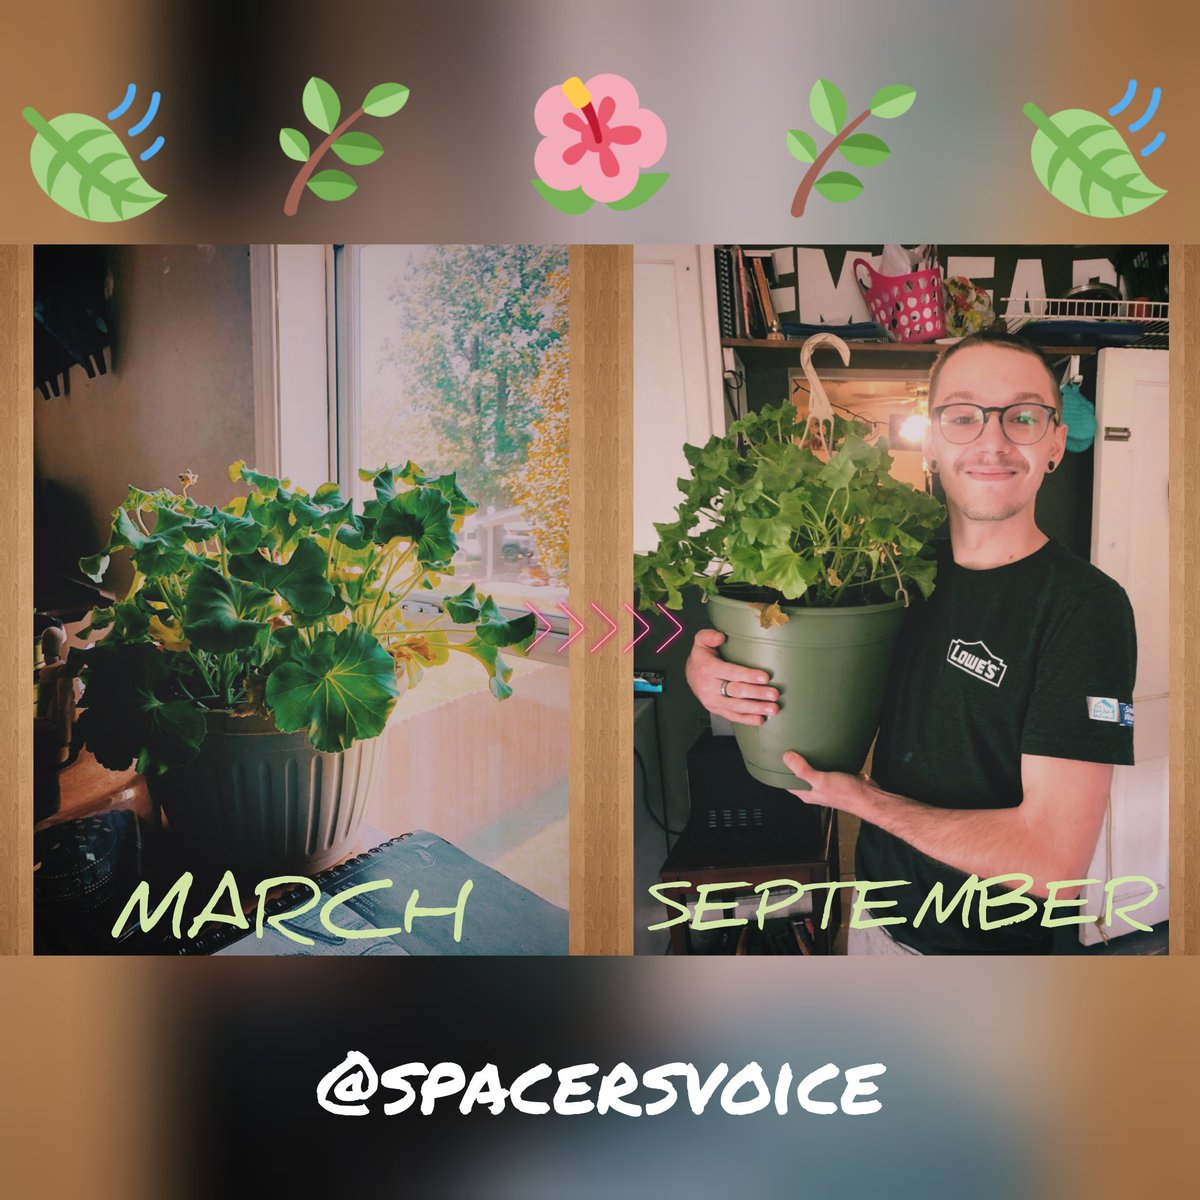 Check out this tweet from spacersvoice: Lockdown was easy, I had a beauty to grow 🤘  #plants #geranium #gardening #garden #tlc #proud #happy #baby https://t.co/LbQUJLimmk